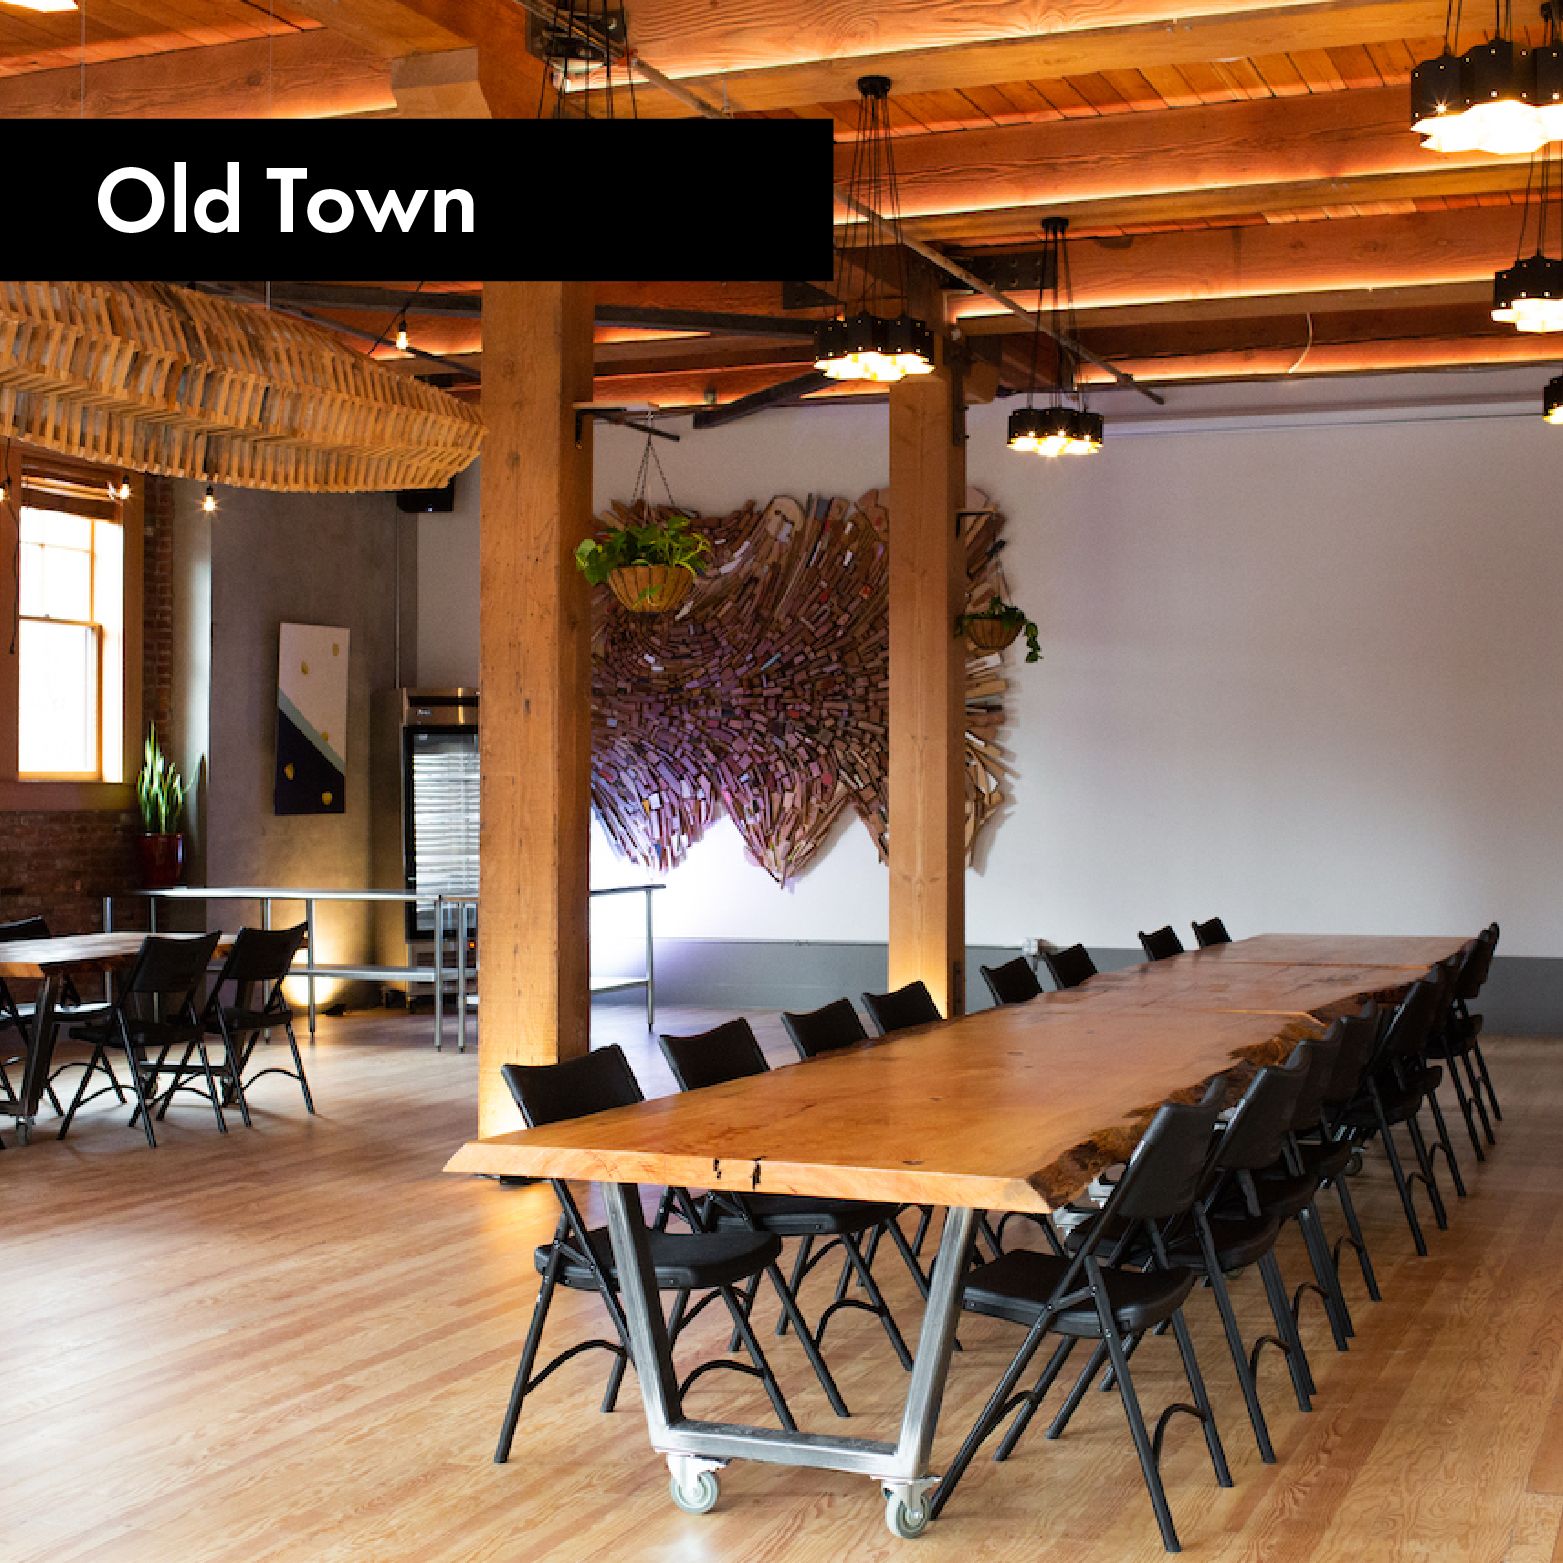 oldtownLocationPage-01.png